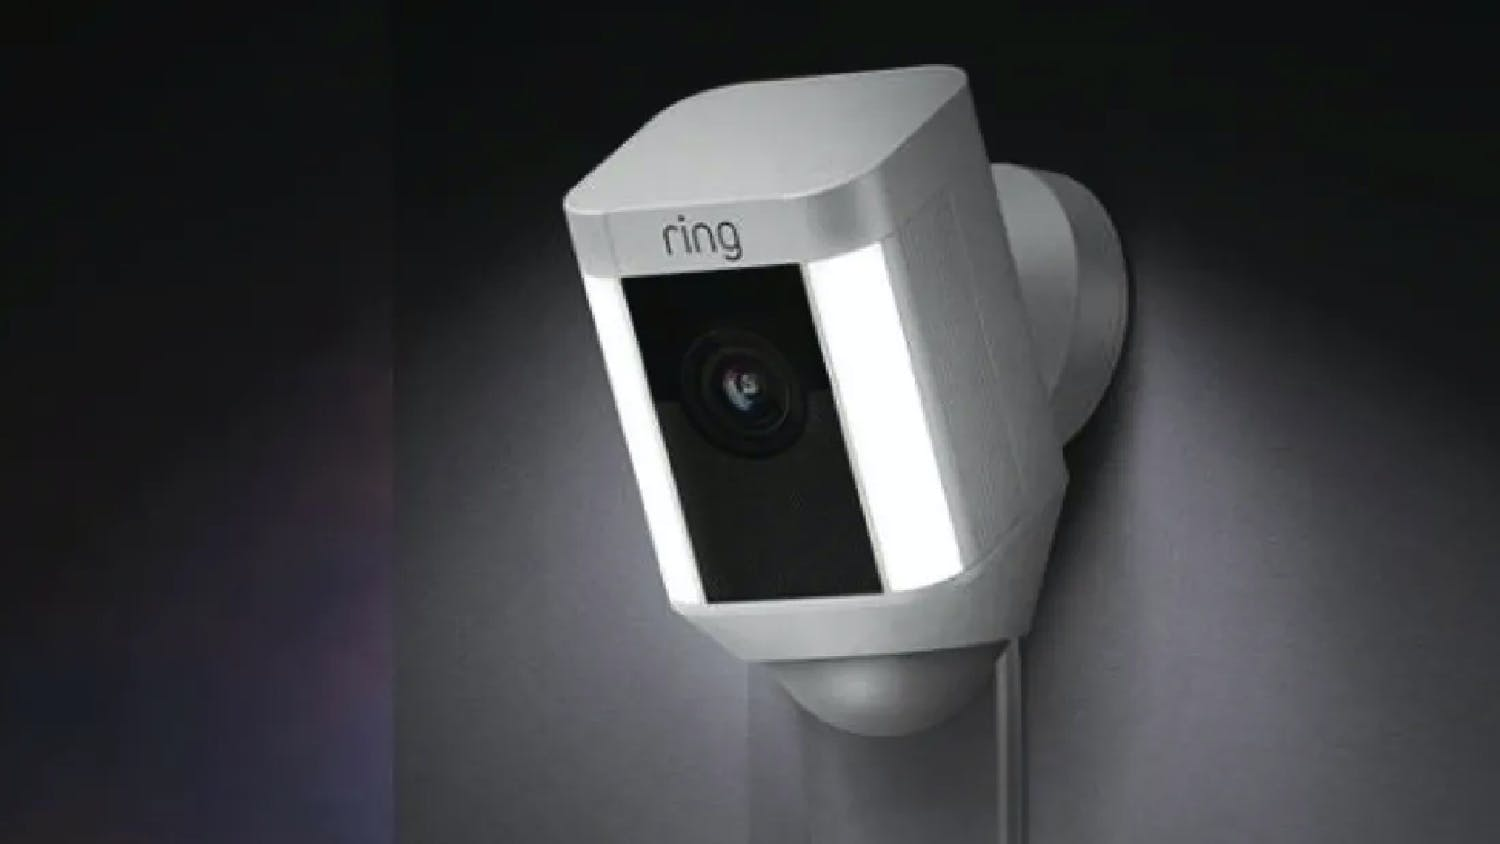 Ring Spotlight Wireless Camera - White